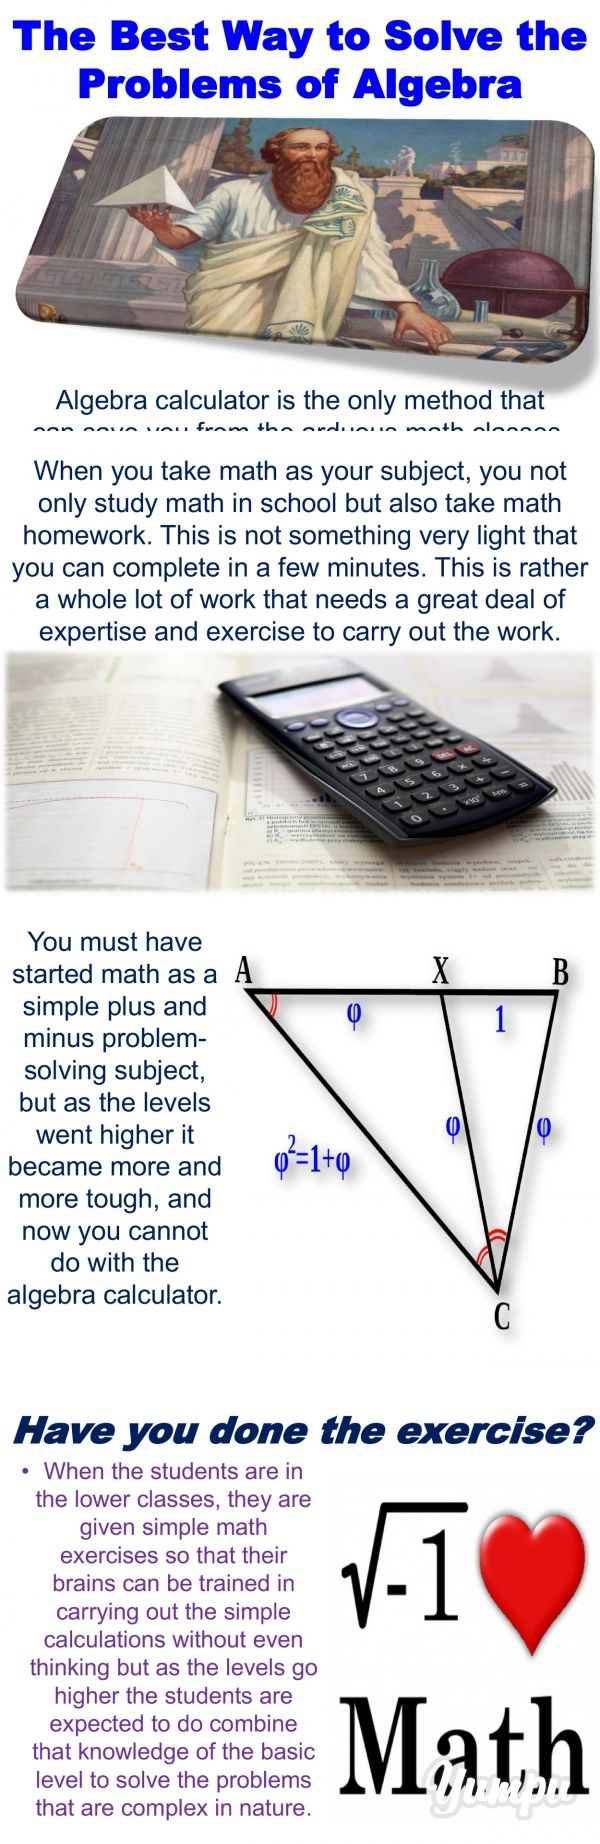 The Best Way To Solve The Problems Of Algebra  Magazine With 17 Pages:  Solve